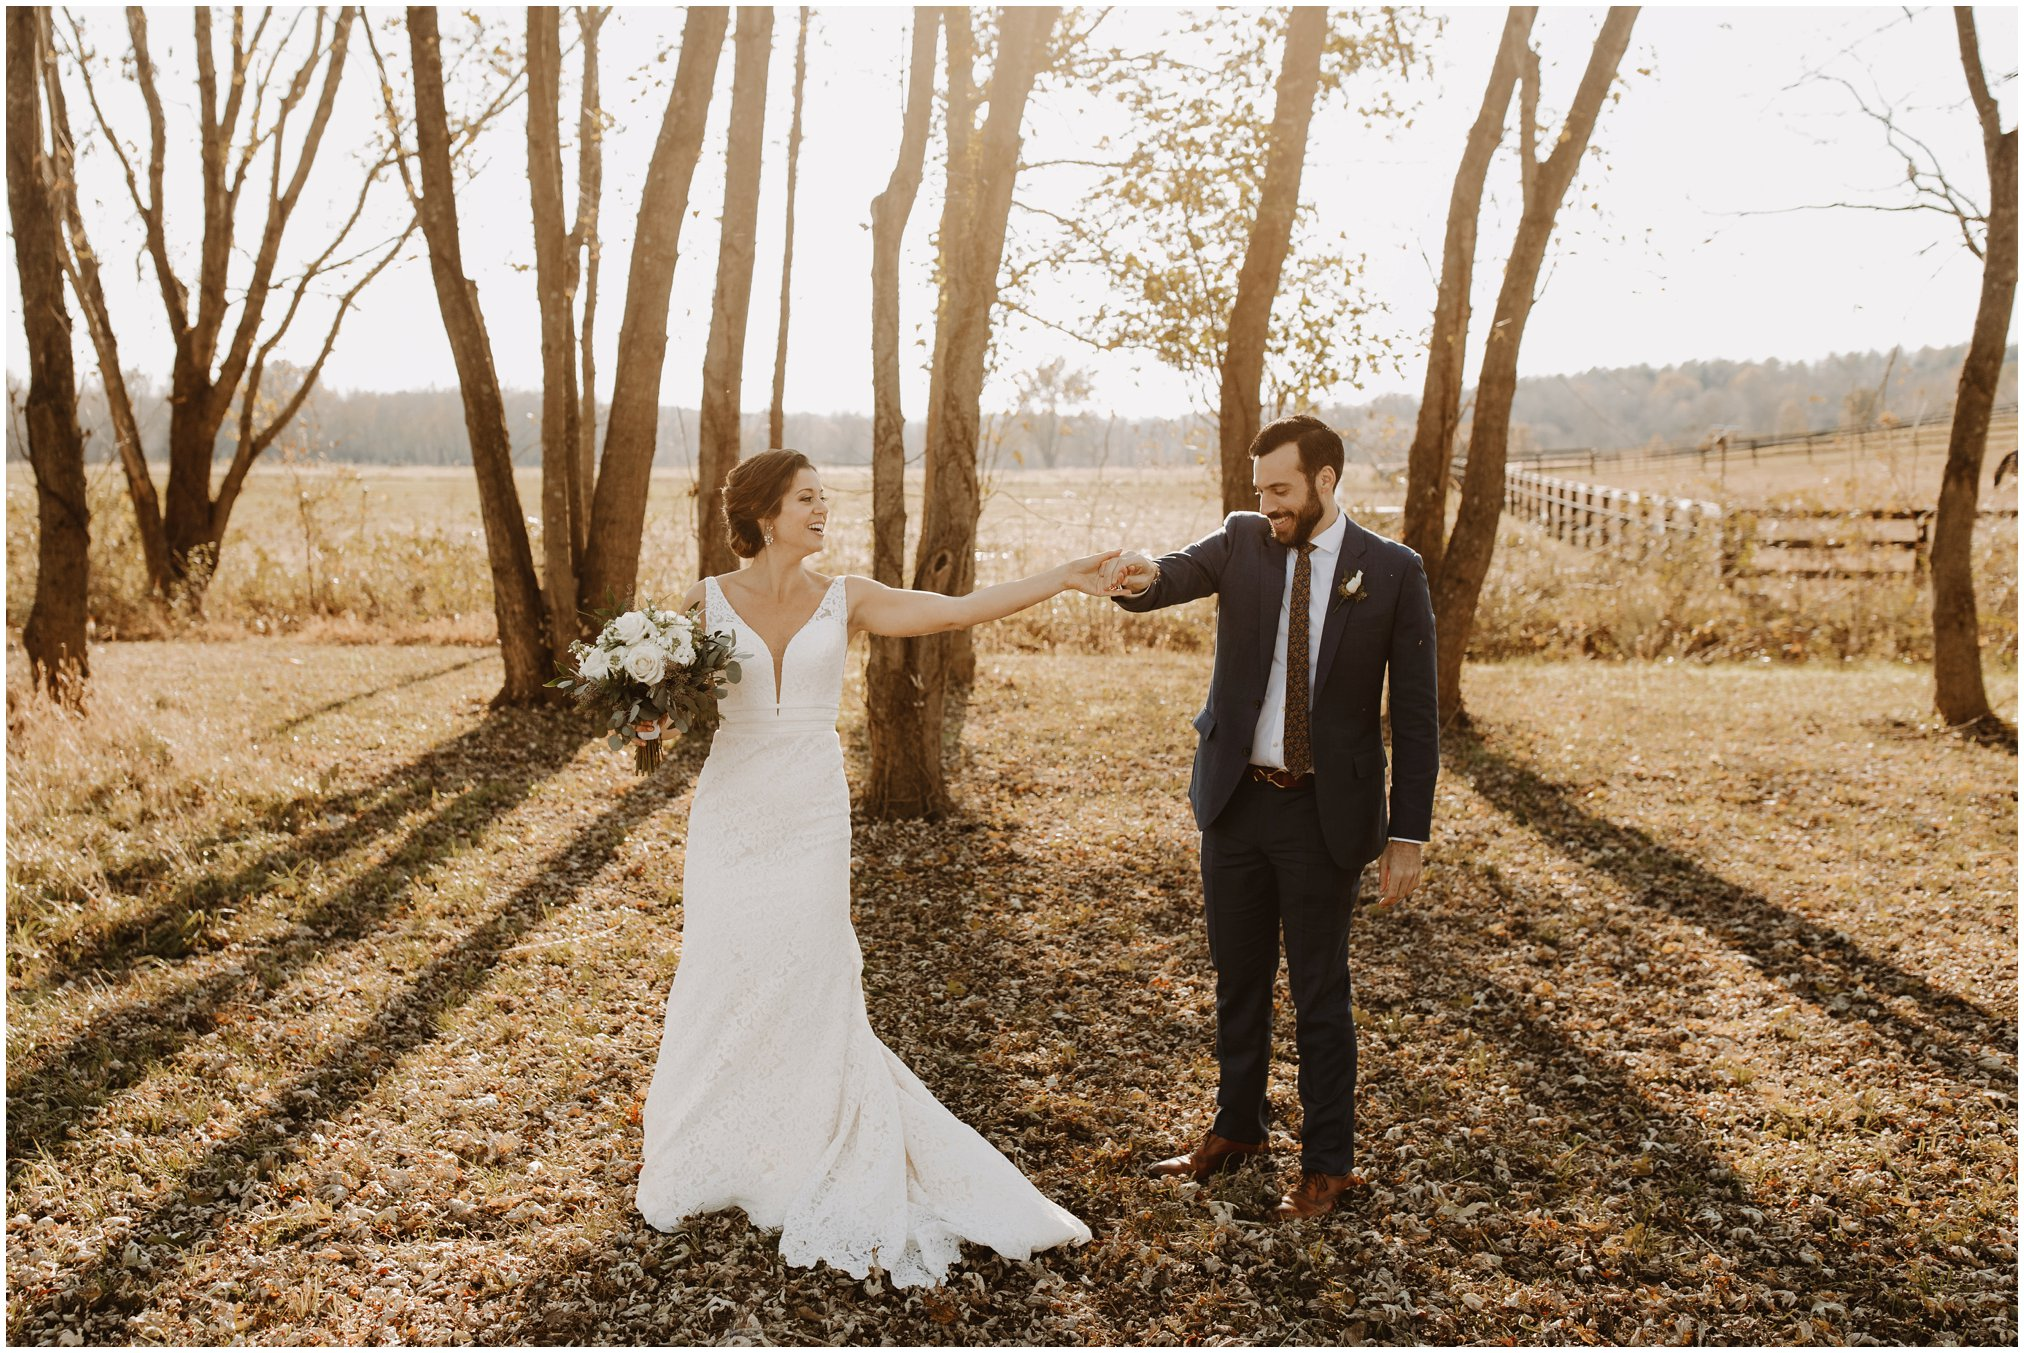 Riverside on the Potomac Wedding, Virginia Wedding Photographer, Maryland Wedding Photographer, Fall Wedding, Kate Ann Photography, Bride and Groom First Look